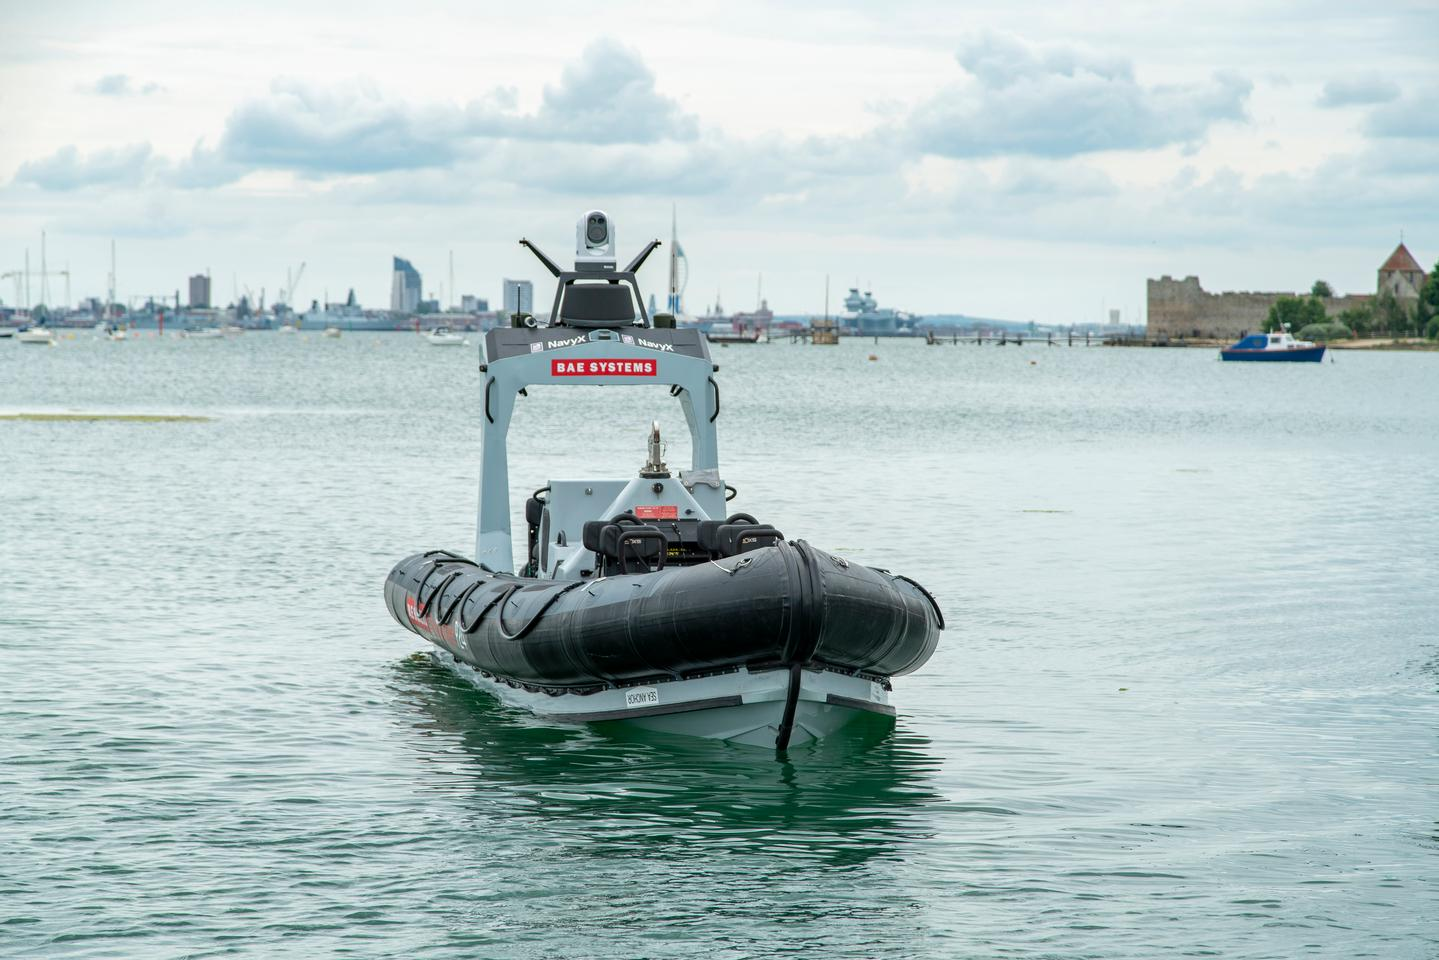 P24 Unmanned is based on the standard P24 RIB